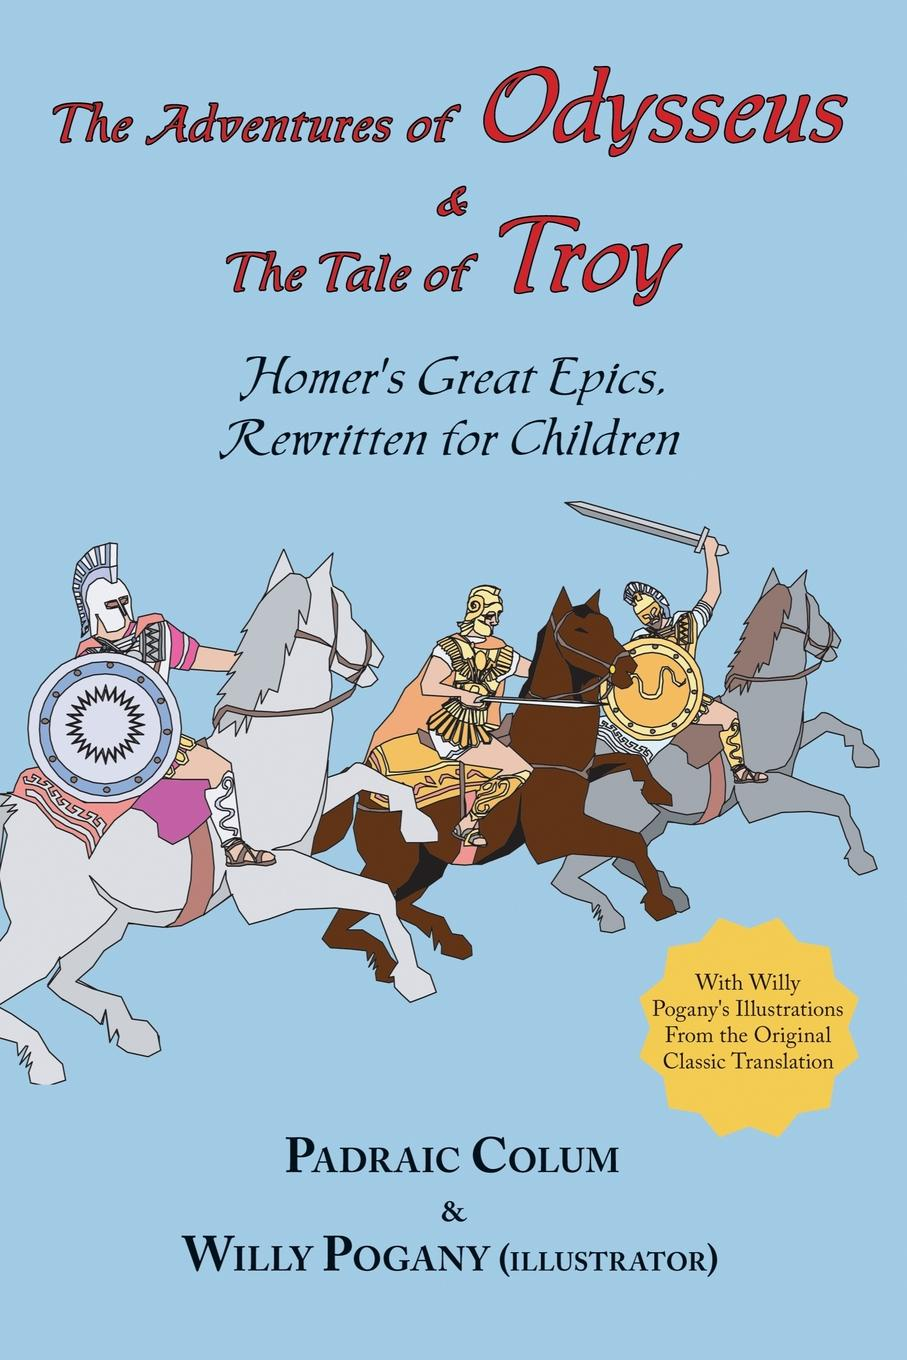 цена Homer, Padraic Colum The Adventures of Odysseus & the Tale of Troy. Homer's Great Epics, Rewritten for Children (Illustrated онлайн в 2017 году